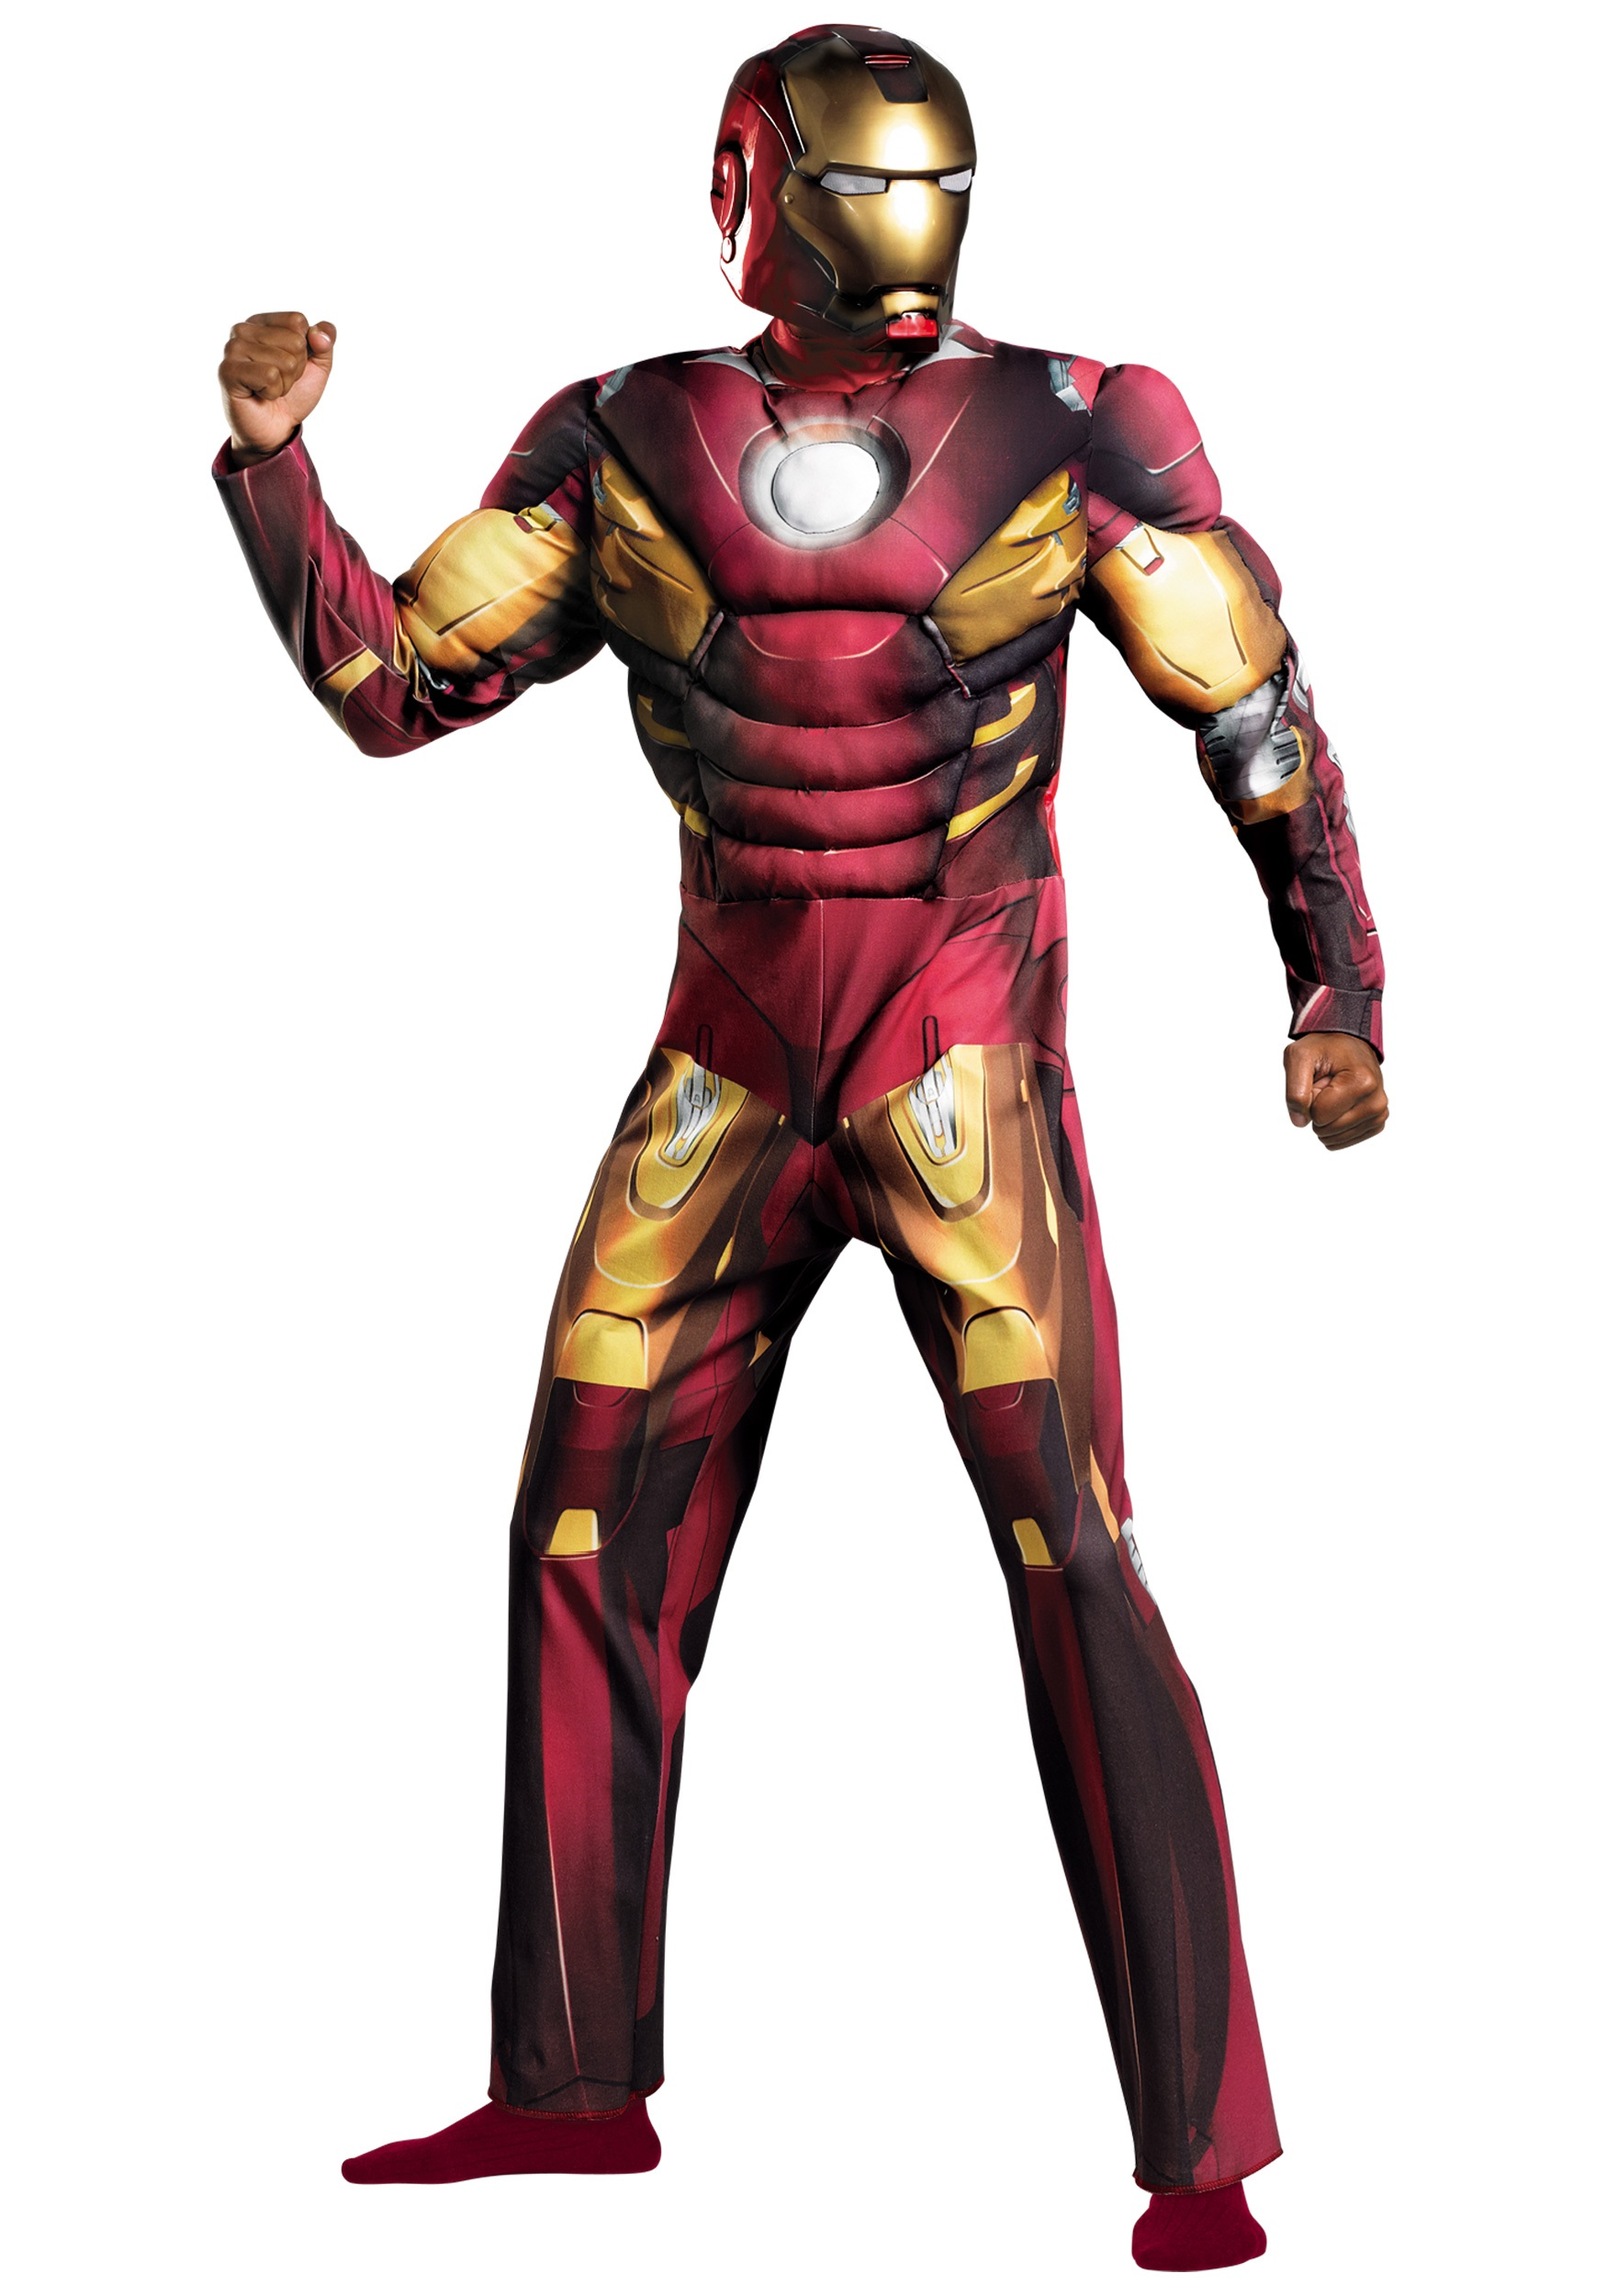 Adult Avengers Iron Man Muscle Costume  sc 1 st  Halloween Costumes & Adult Avengers Iron Man Muscle Costume - Halloween Costumes